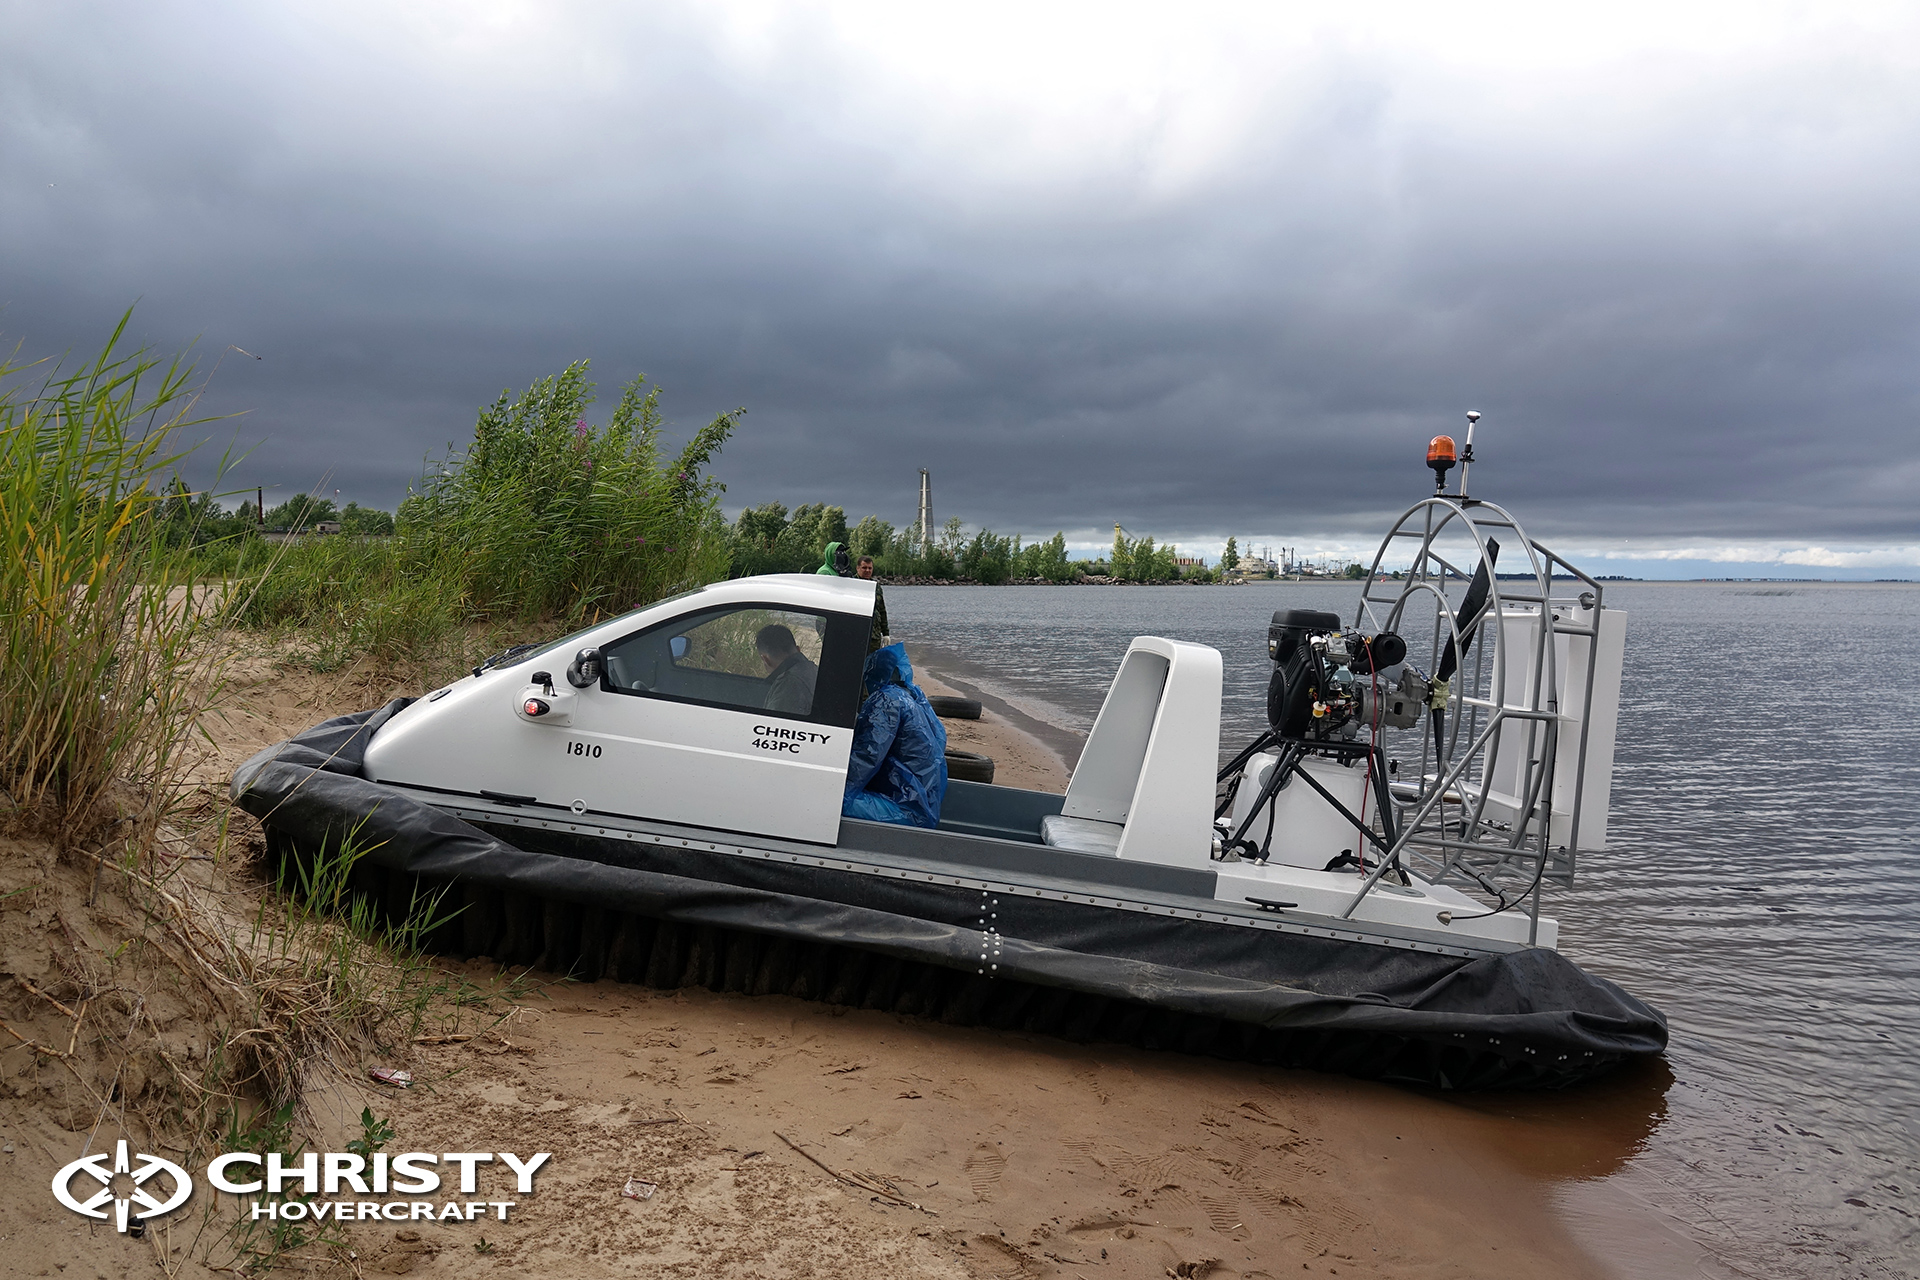 Hovercraft Christy 463 PC in Storm 290618 10.jpg | фото №8